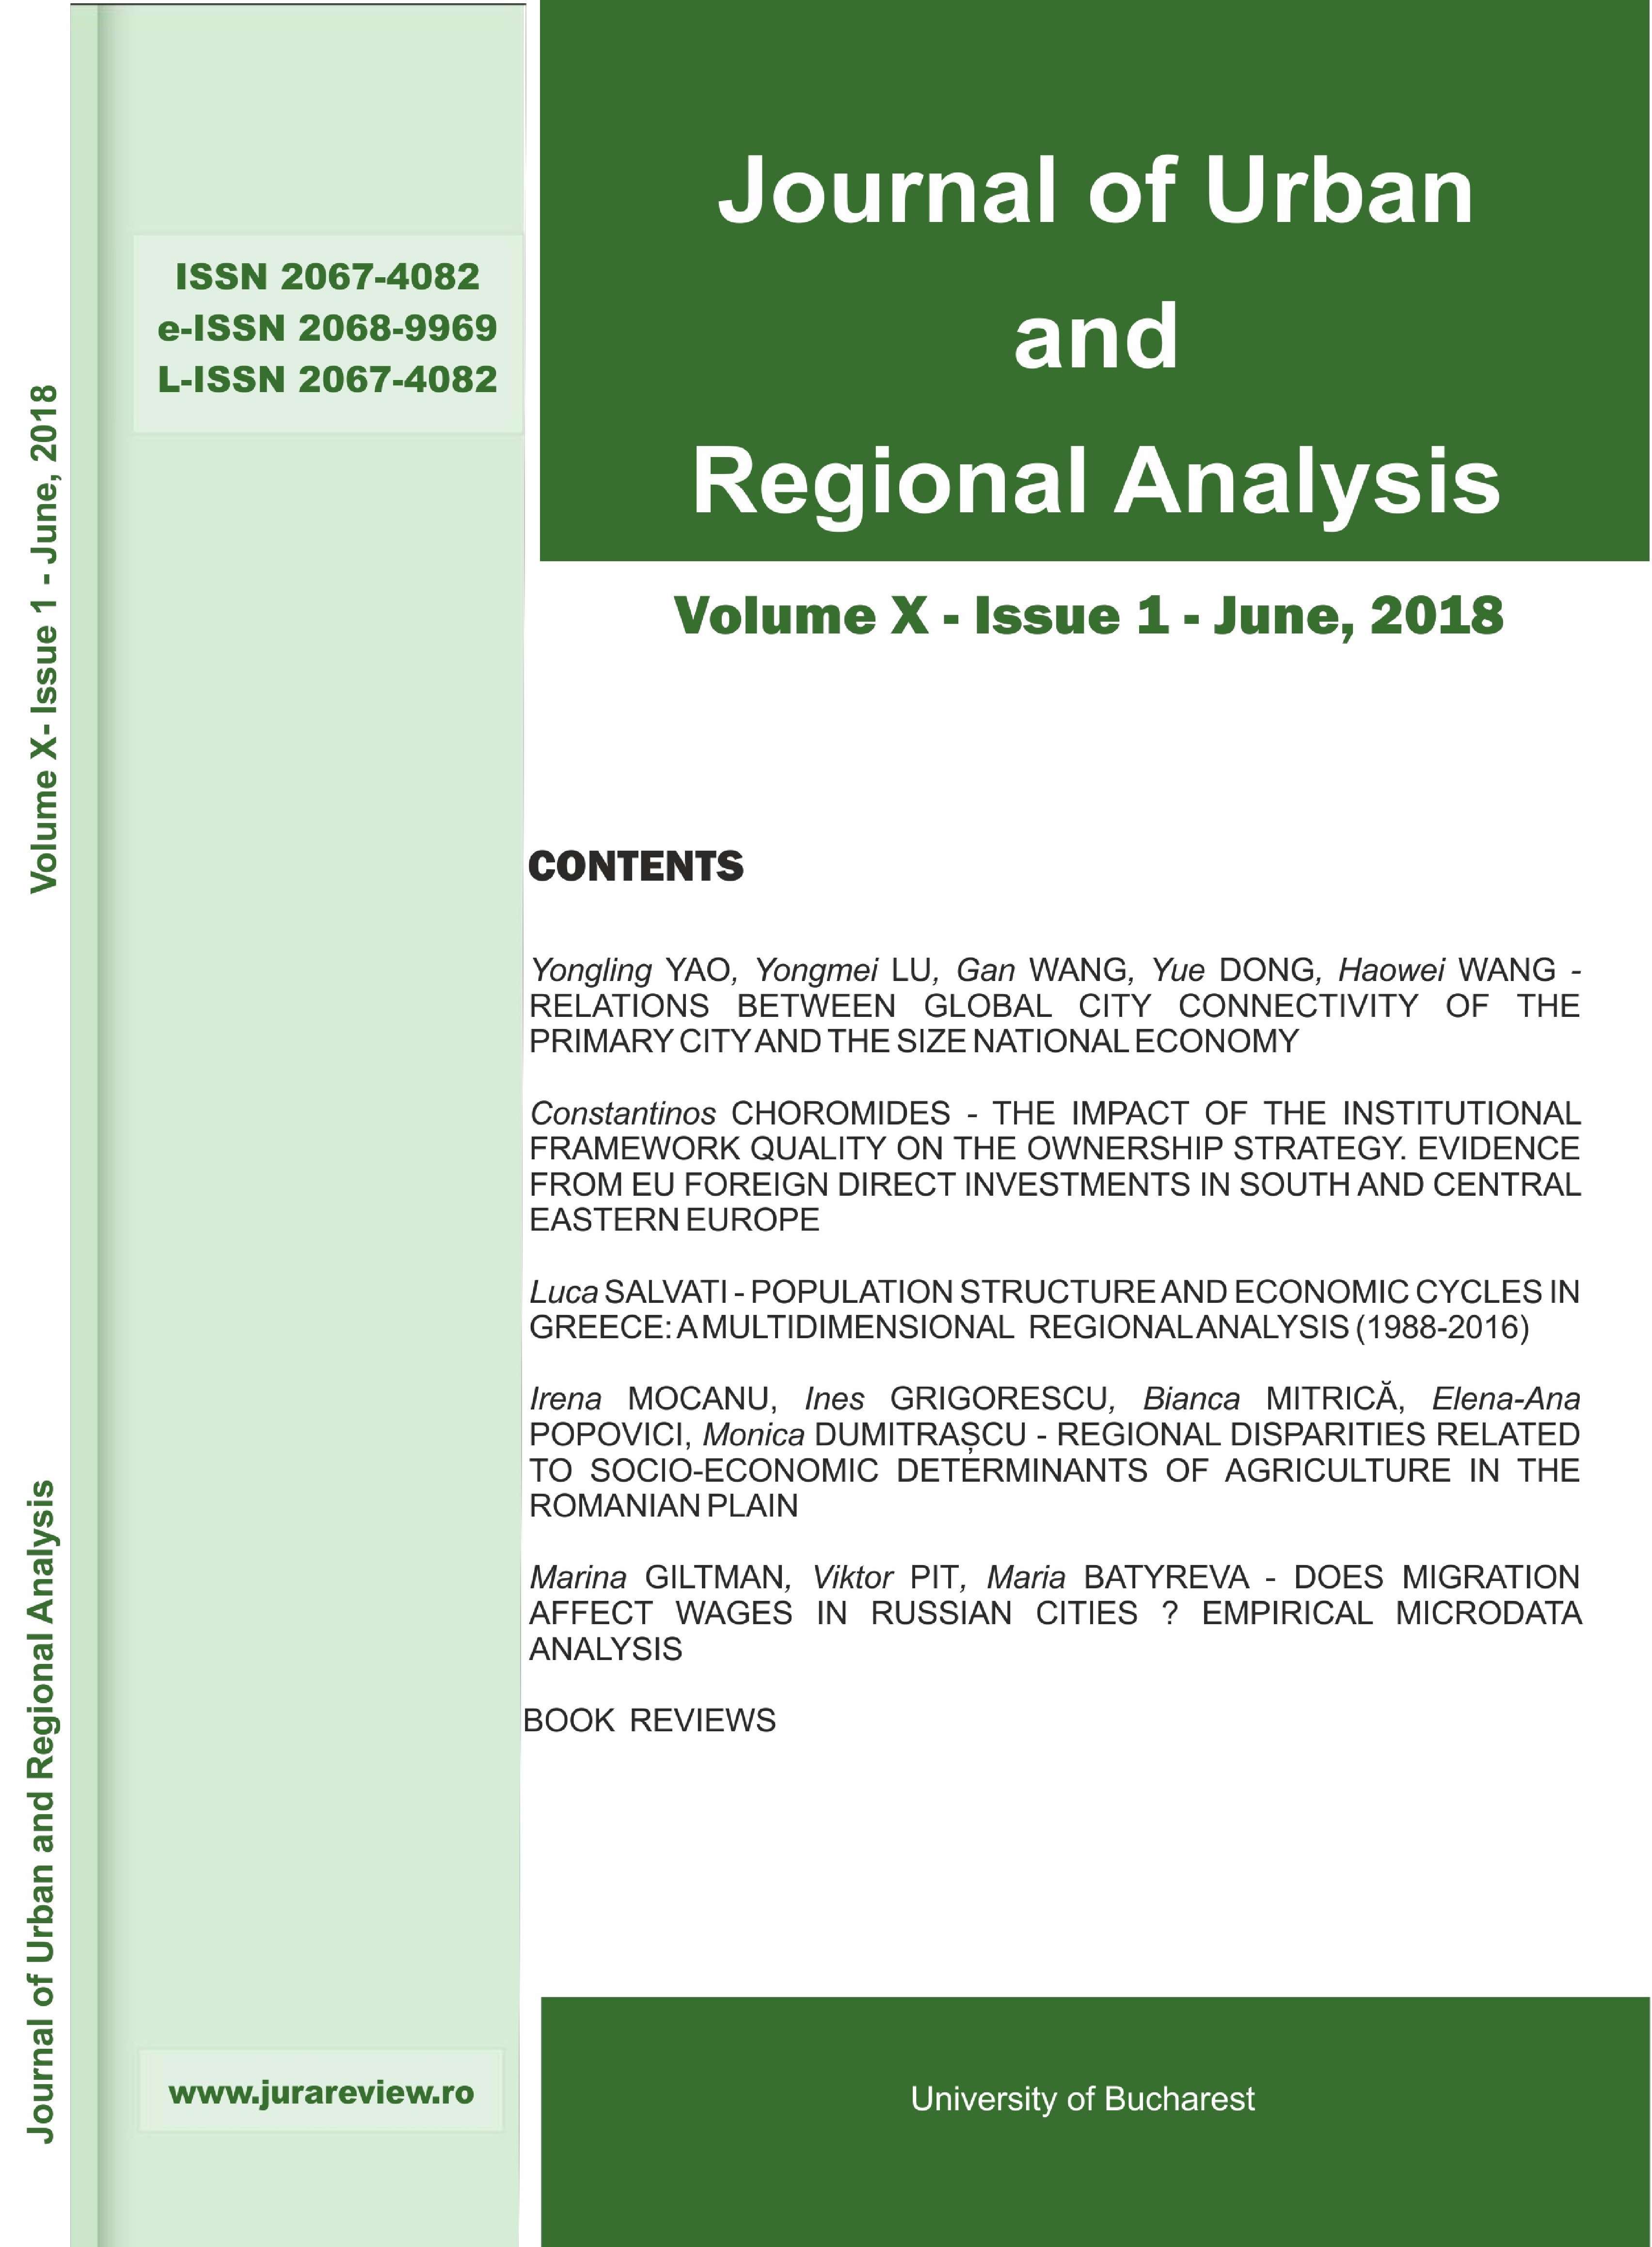 Journal of Urban and Regional Analysis